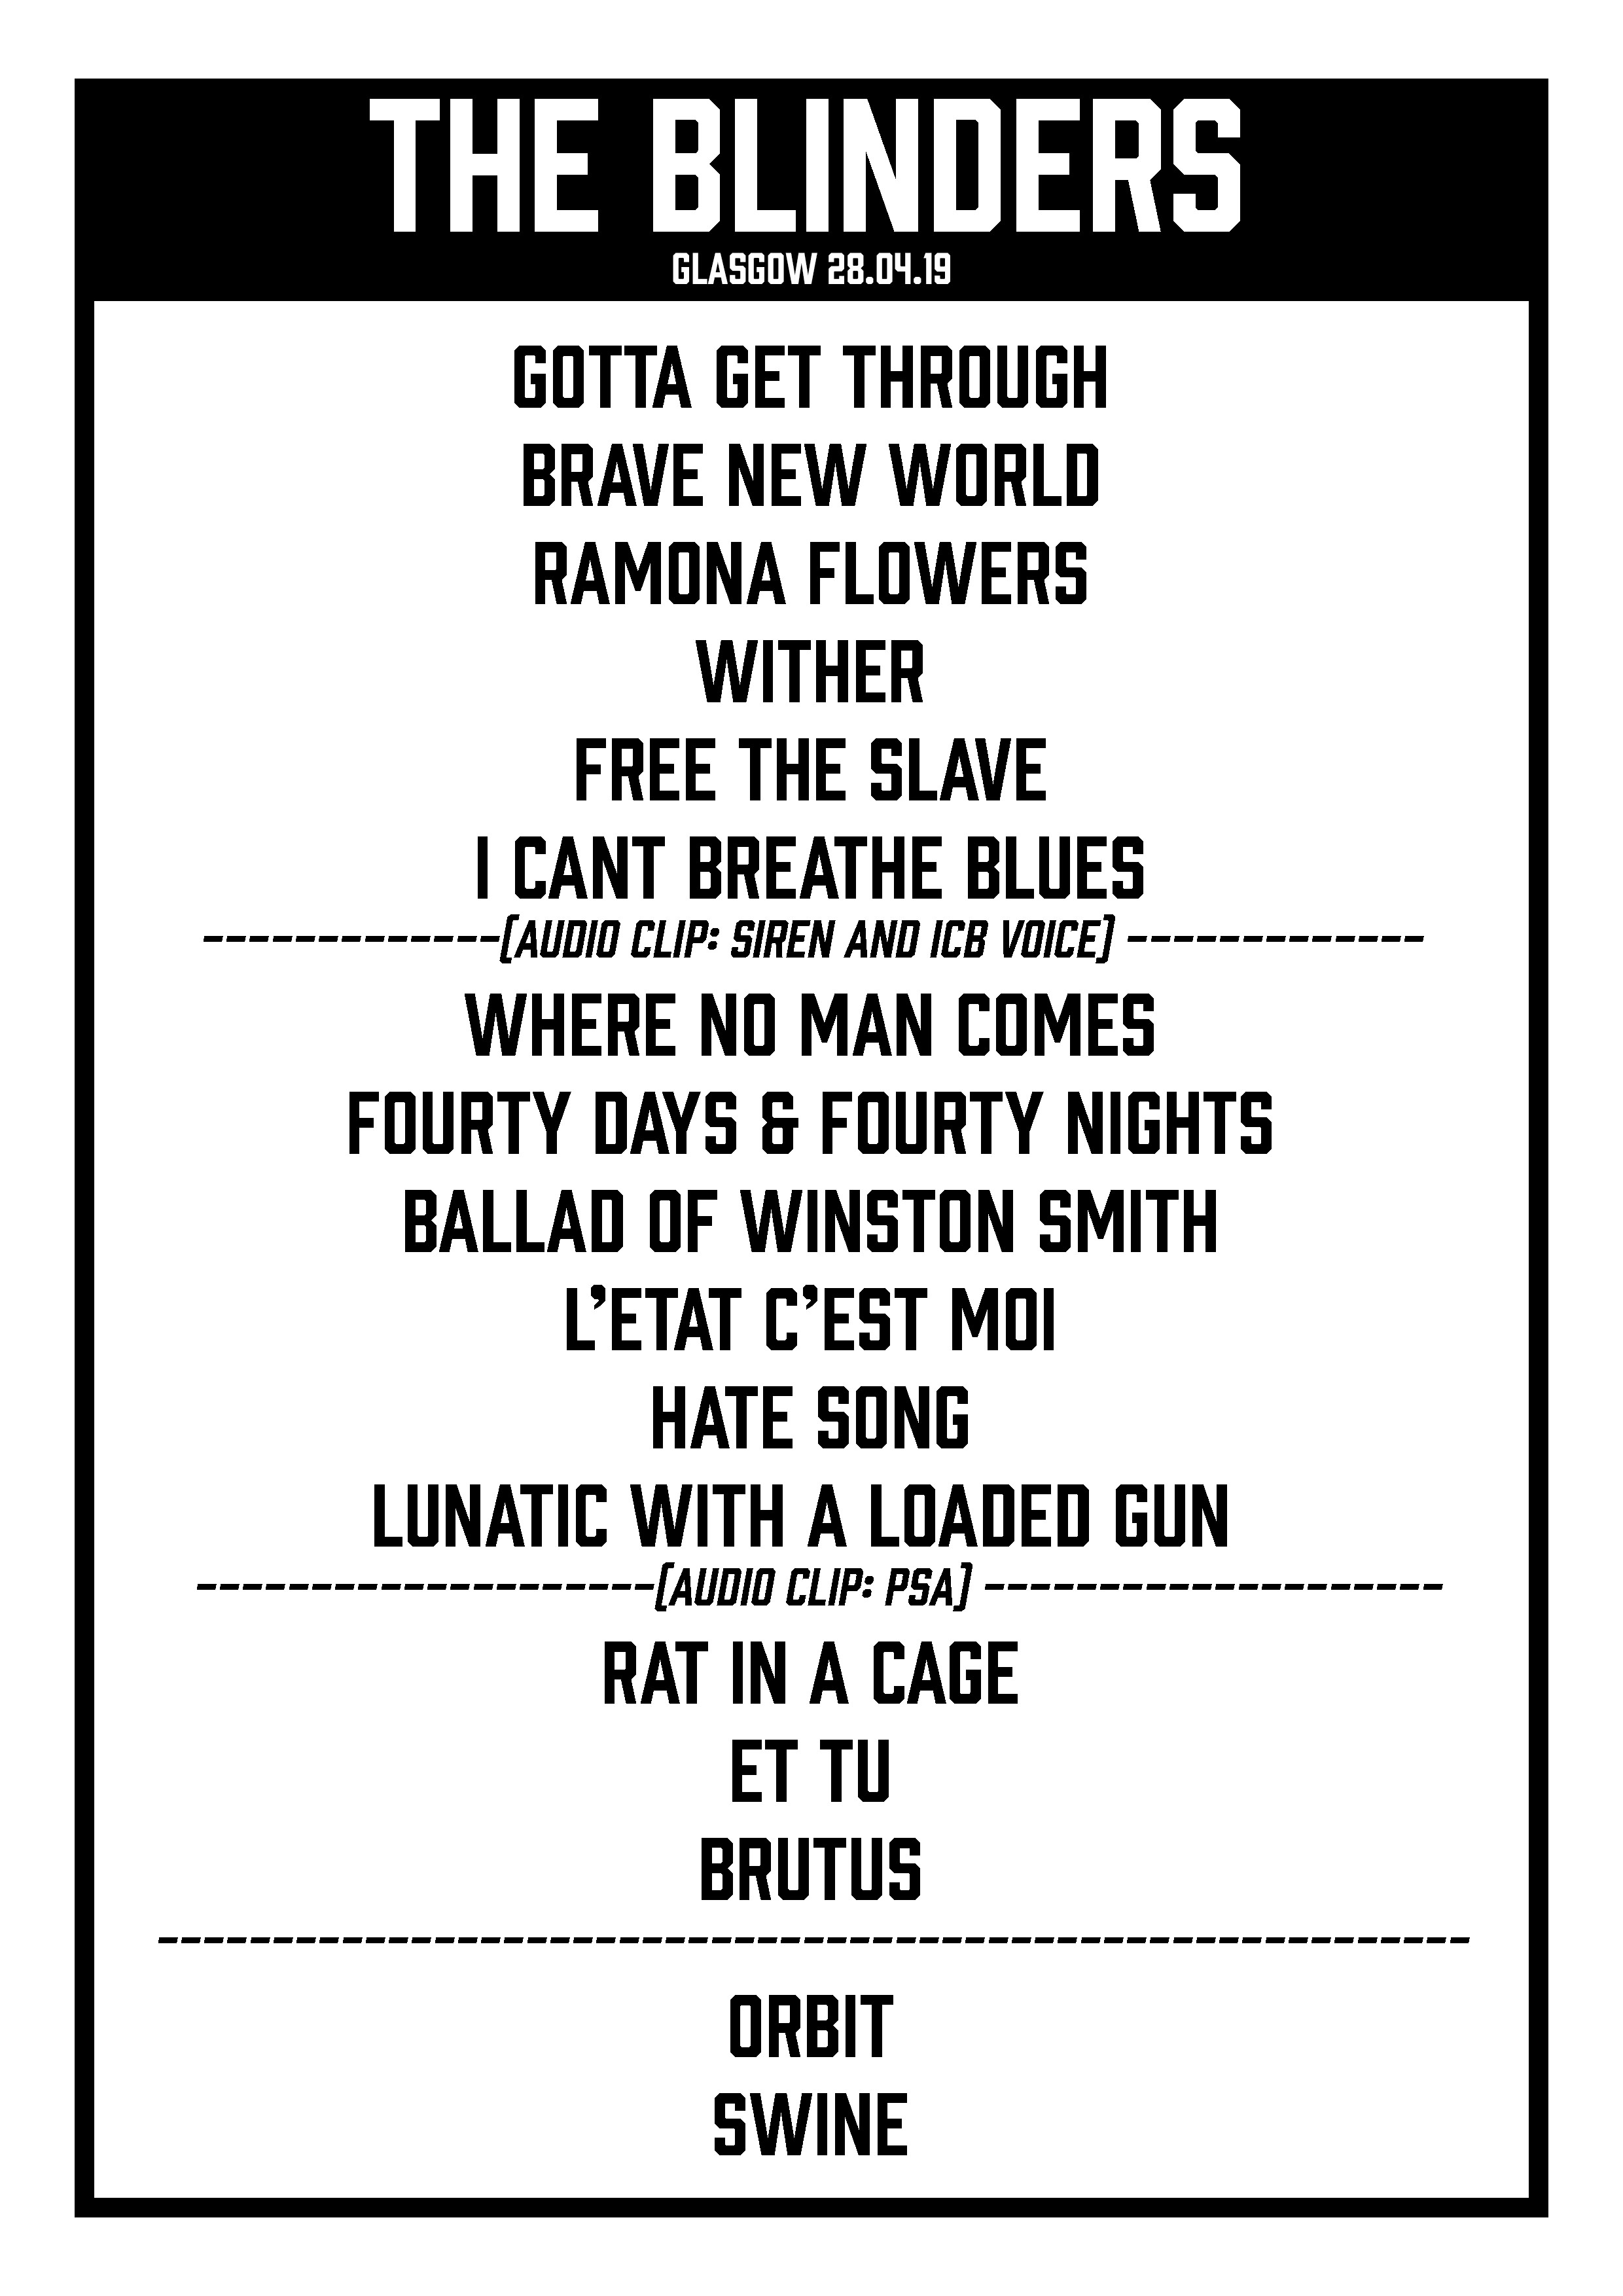 Get your own copy of the set list -